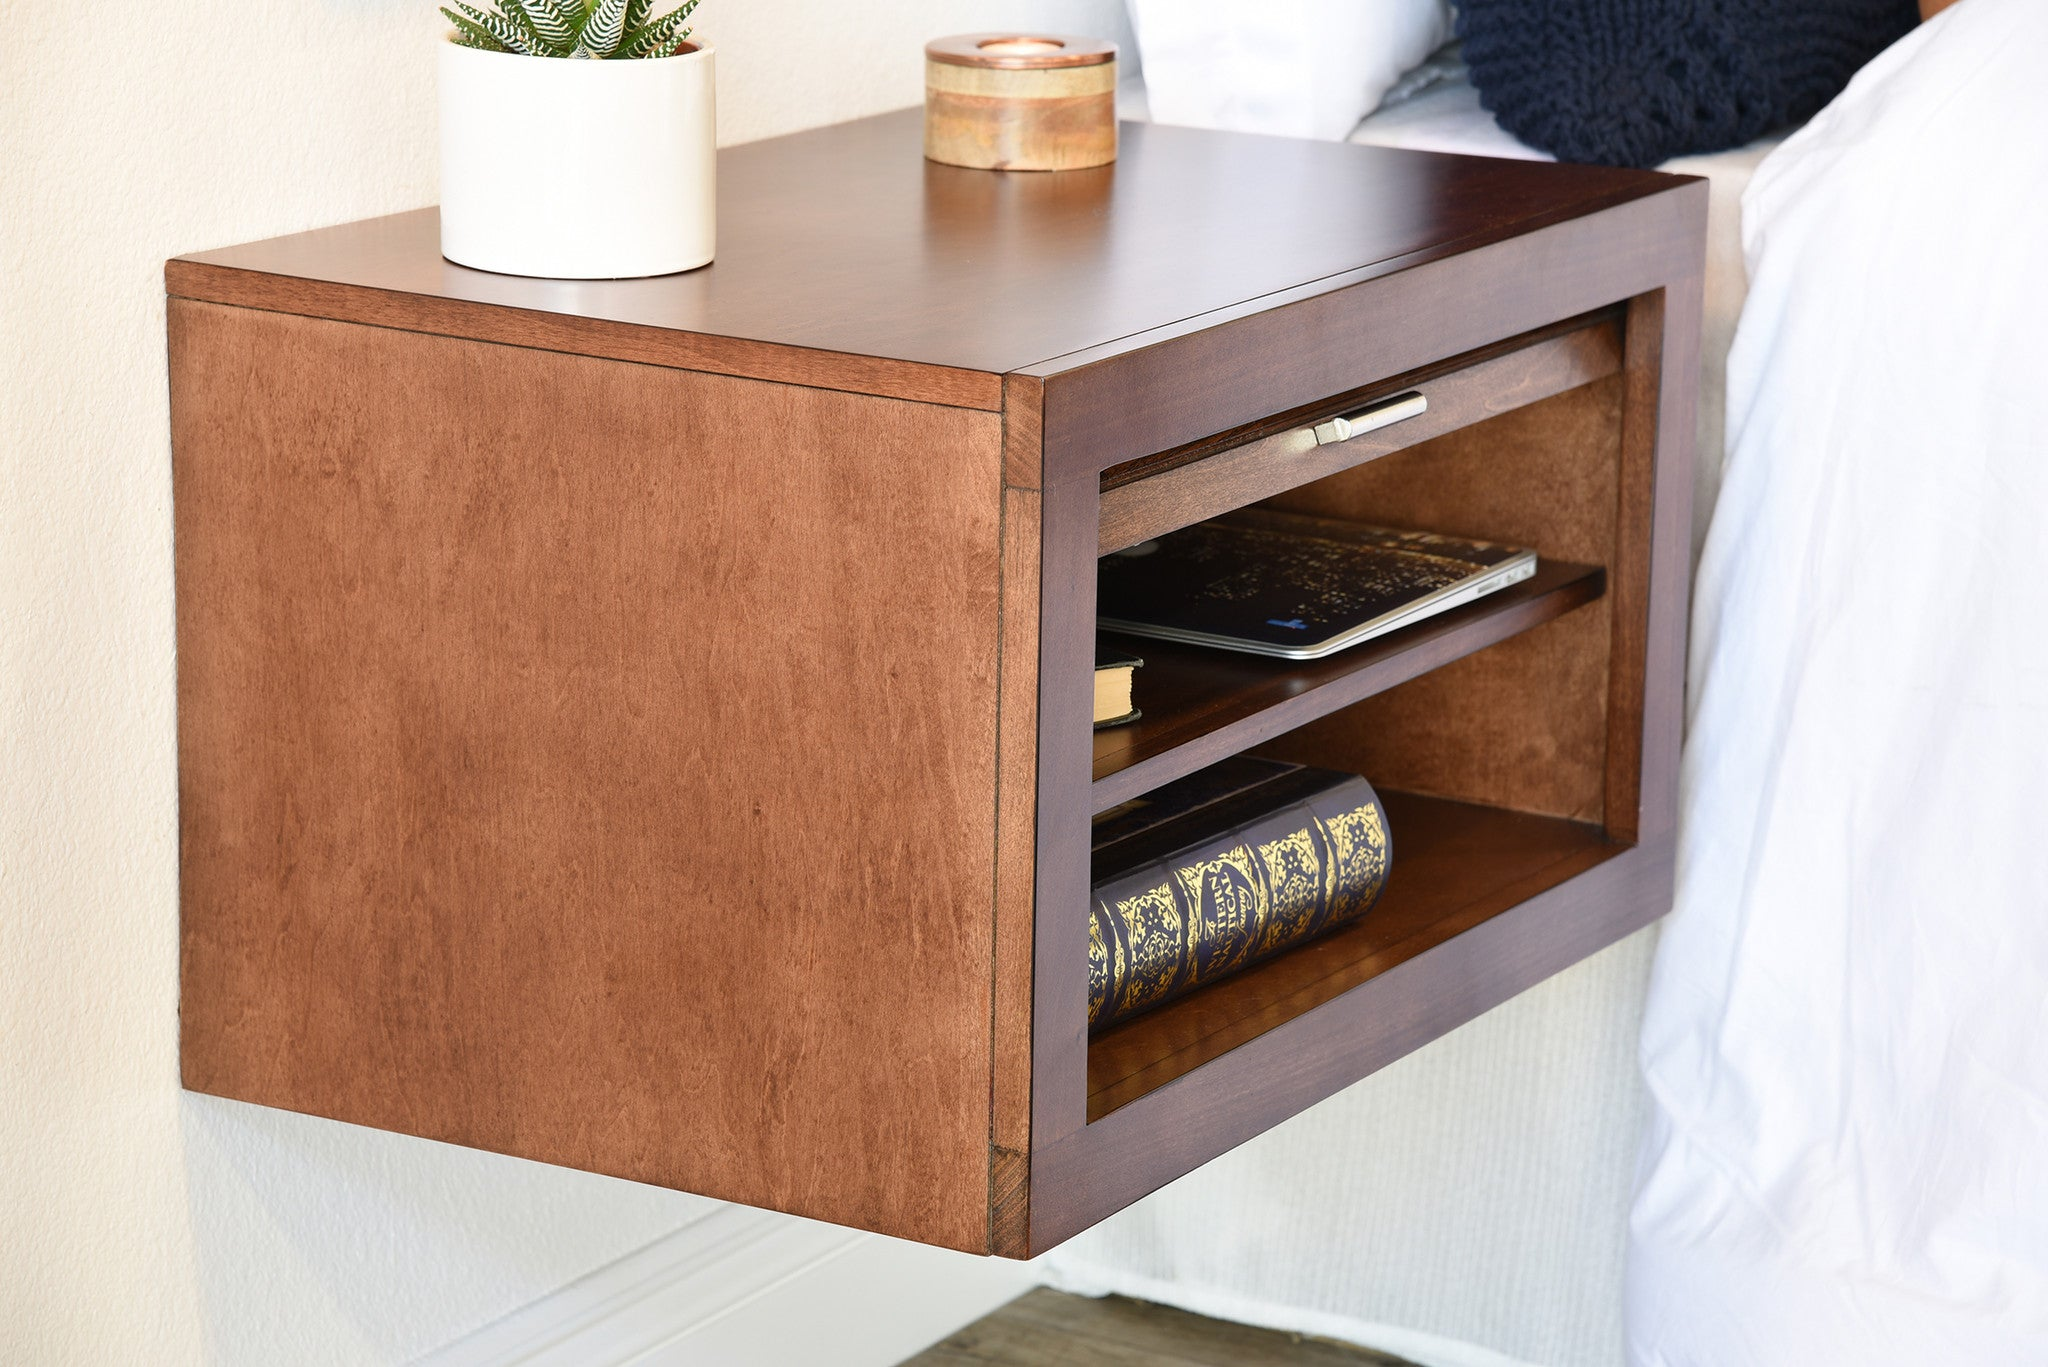 Floating Wall Mount Nightstands - ECO GEO - Mocha - OB 30% OFF